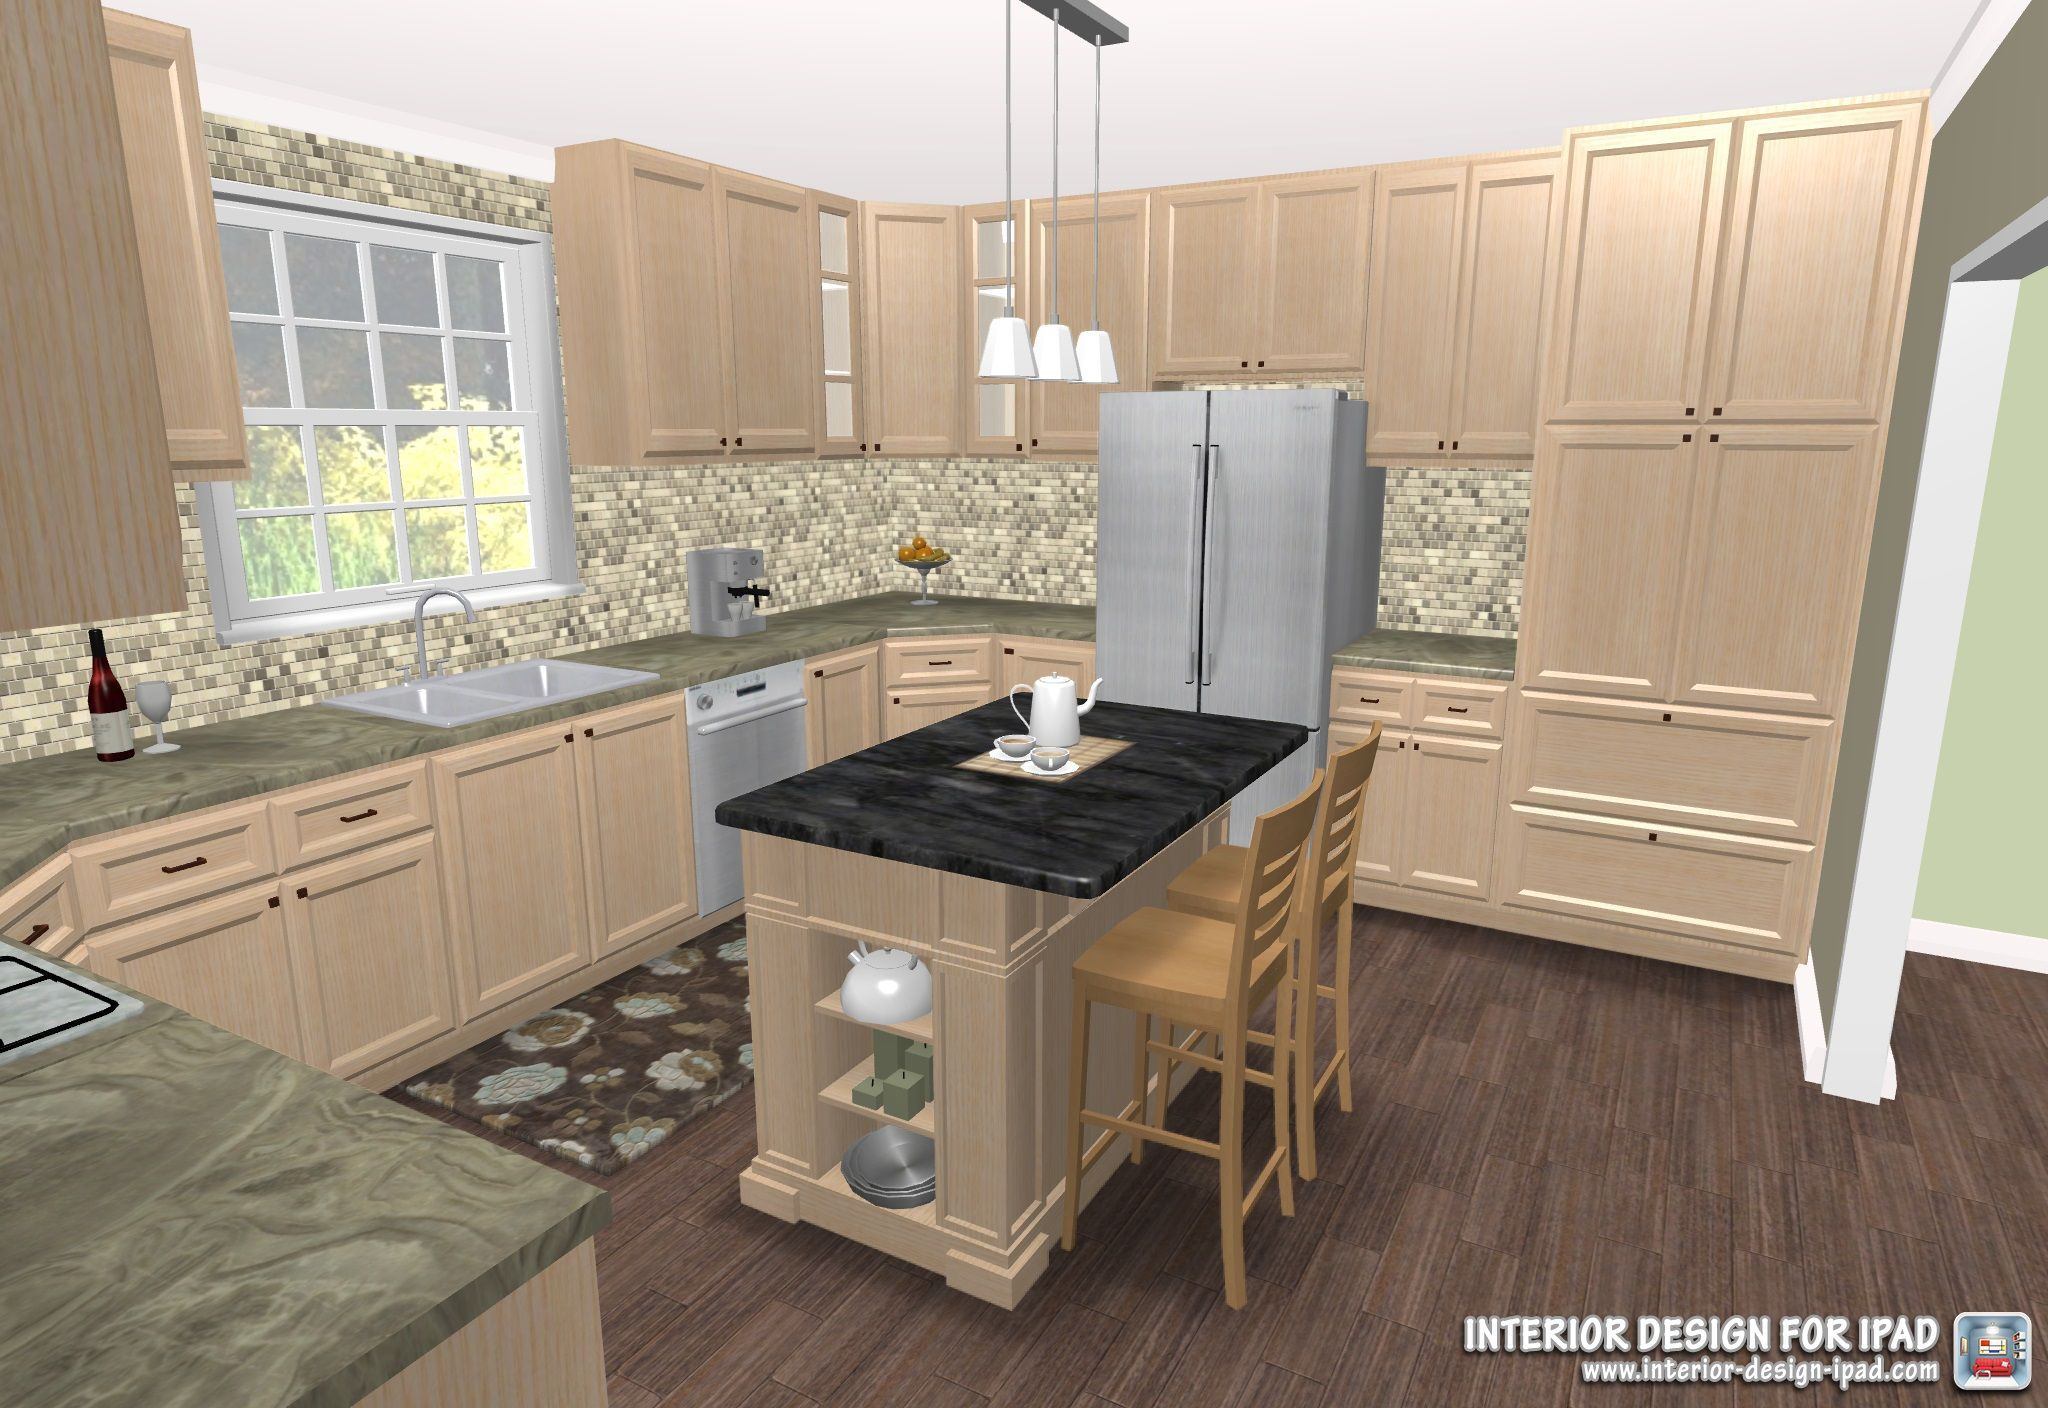 kitchen cabinets design software for ipad | kitchen